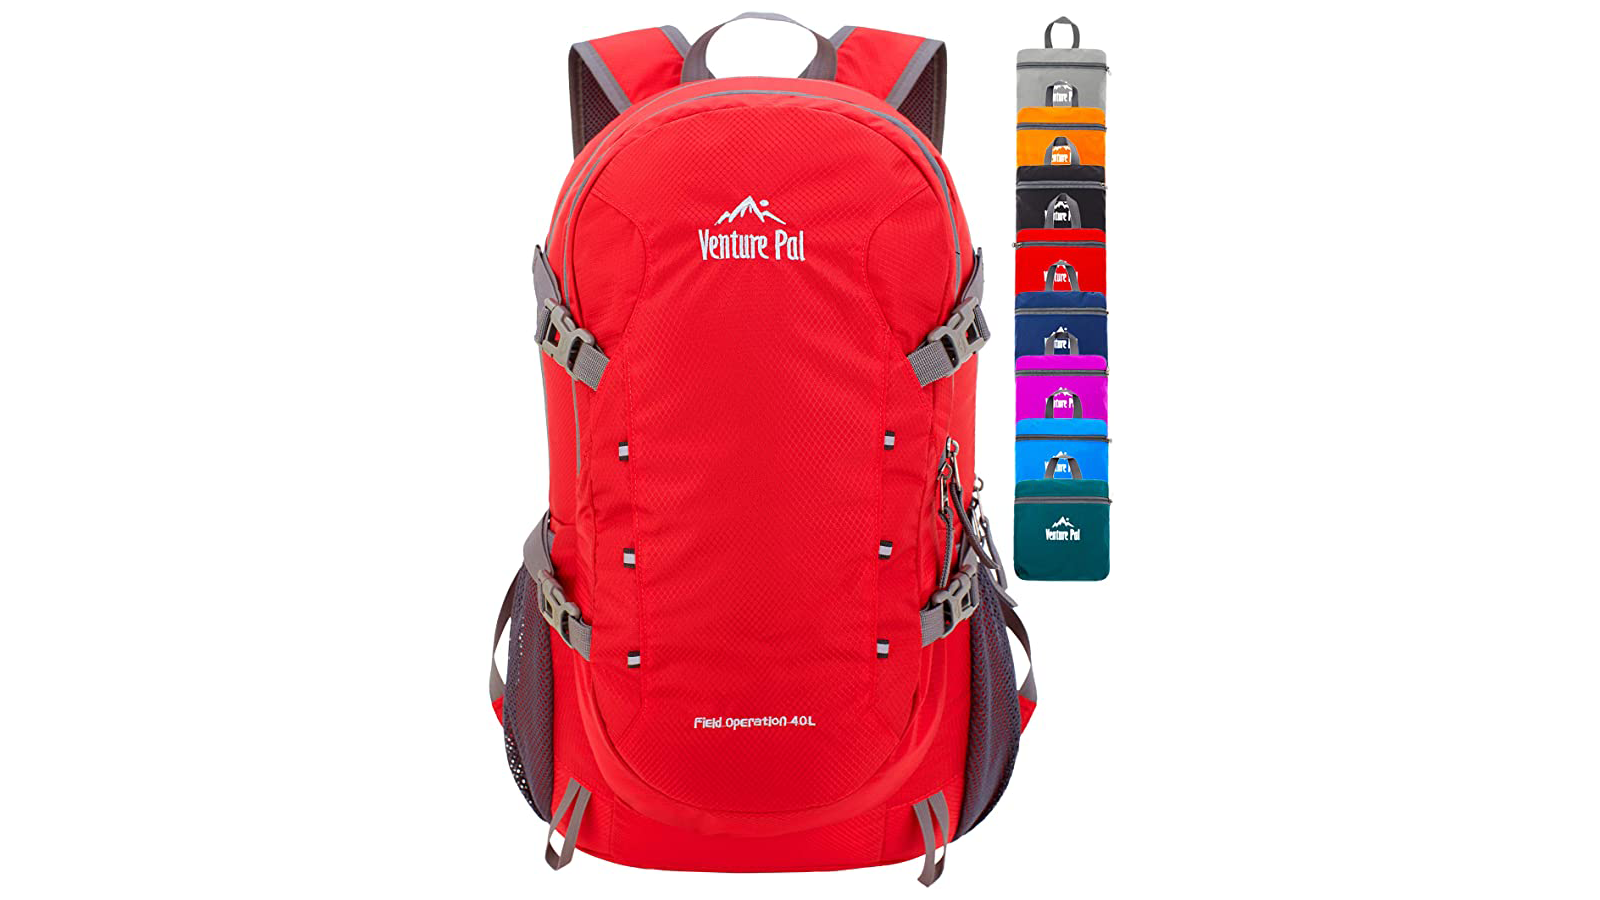 This 40L Travel Daypack is Perfect for Hikes or Daylong Adventures